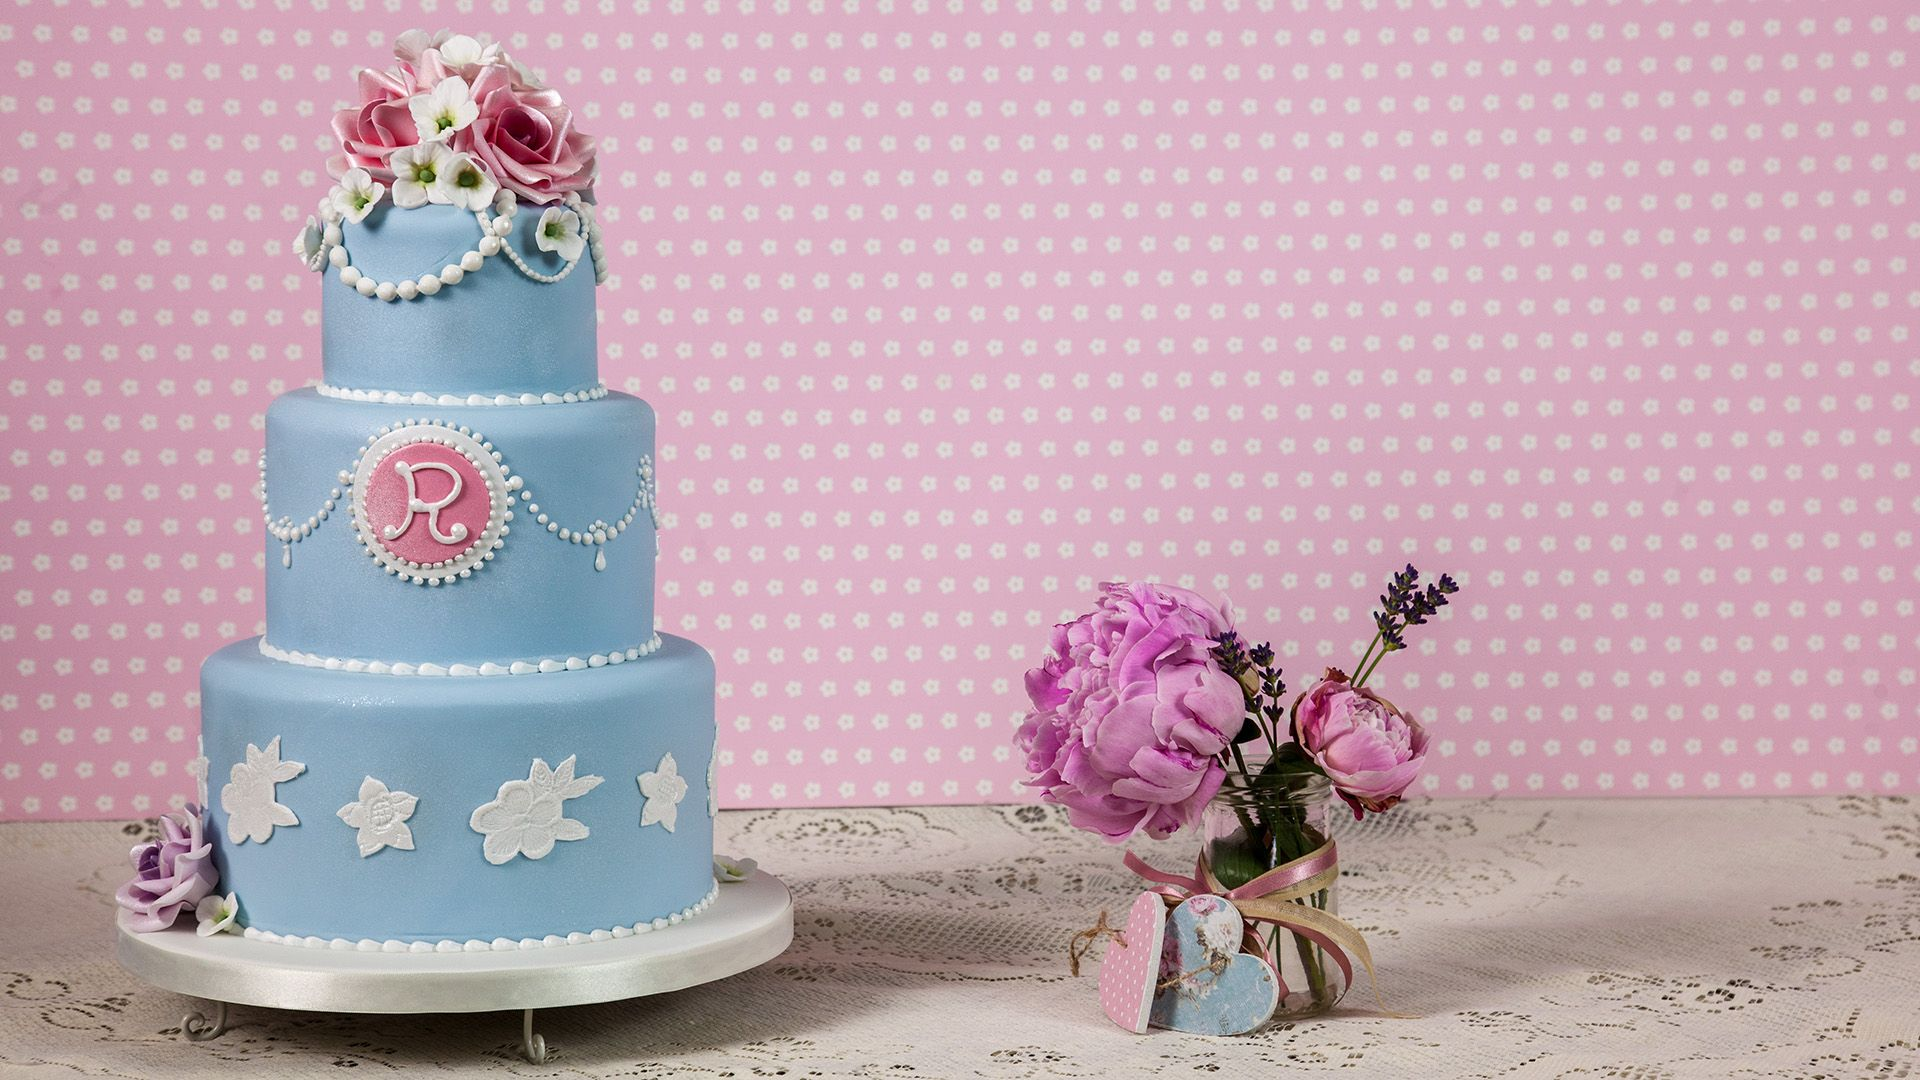 Learn to make a Vintage 3 tier cake like this one here